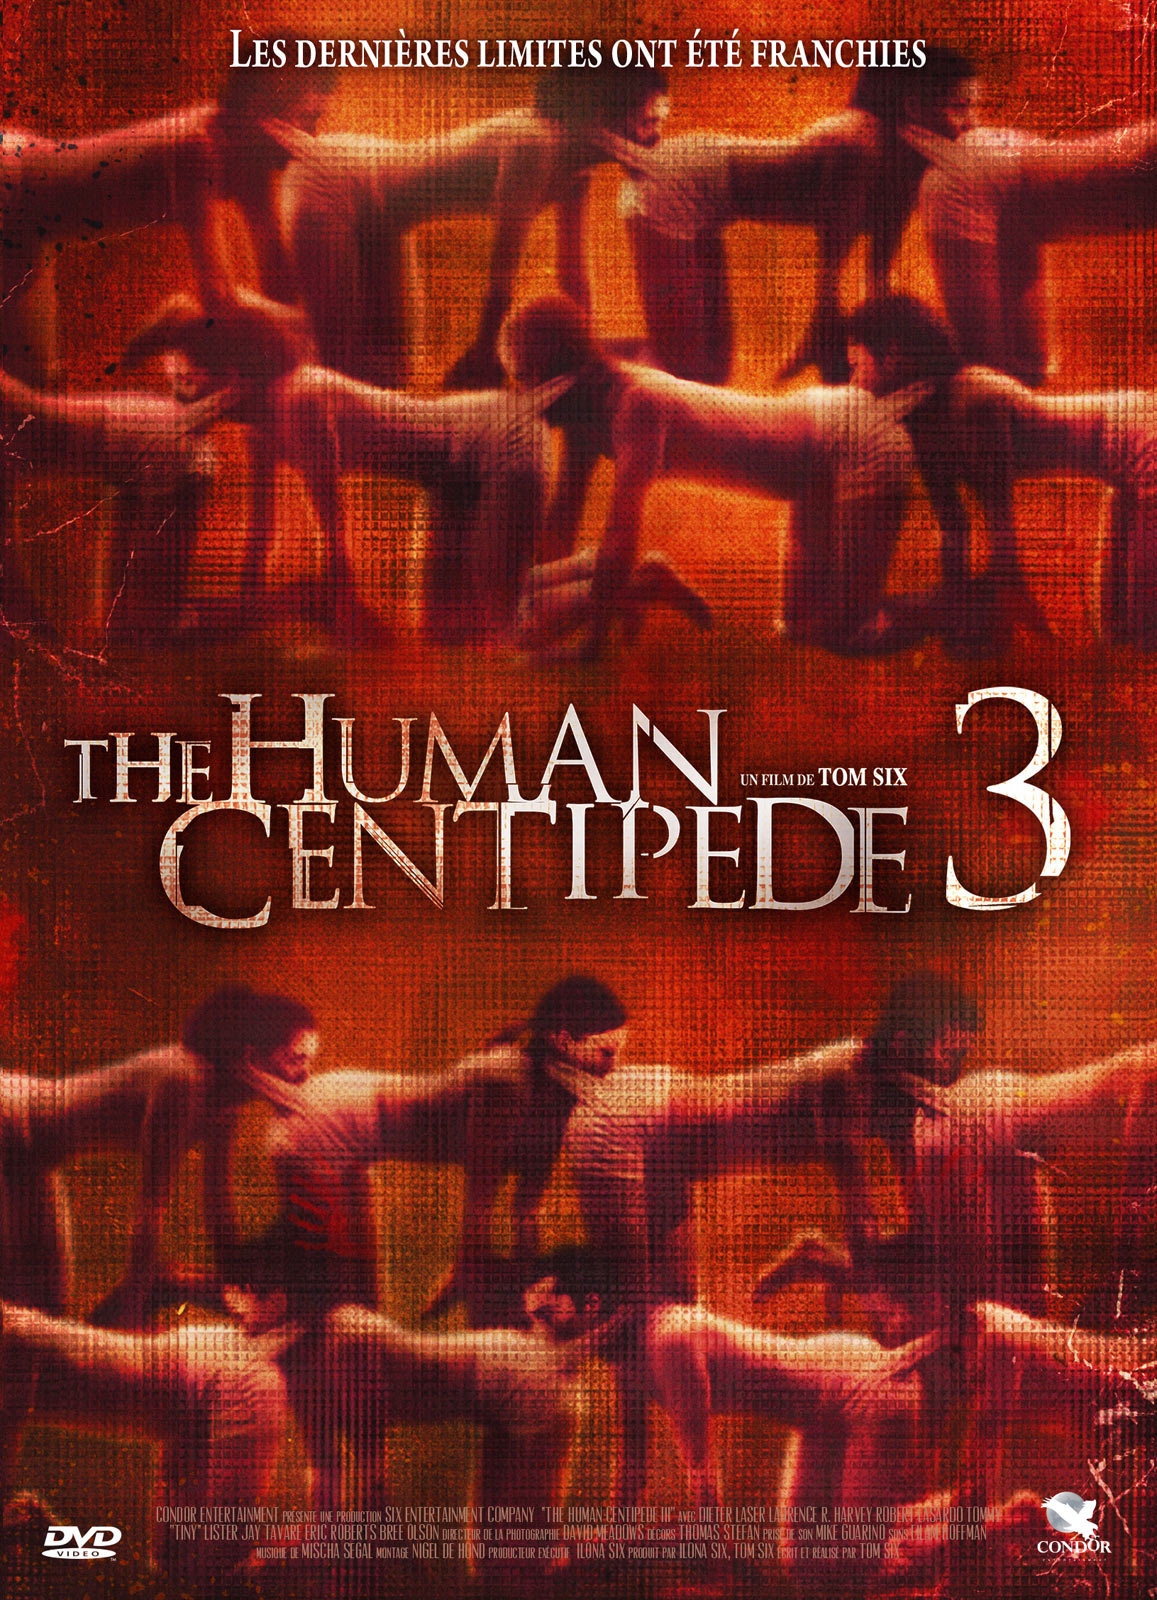 The Human Centipede III (Final Sequence) ddl